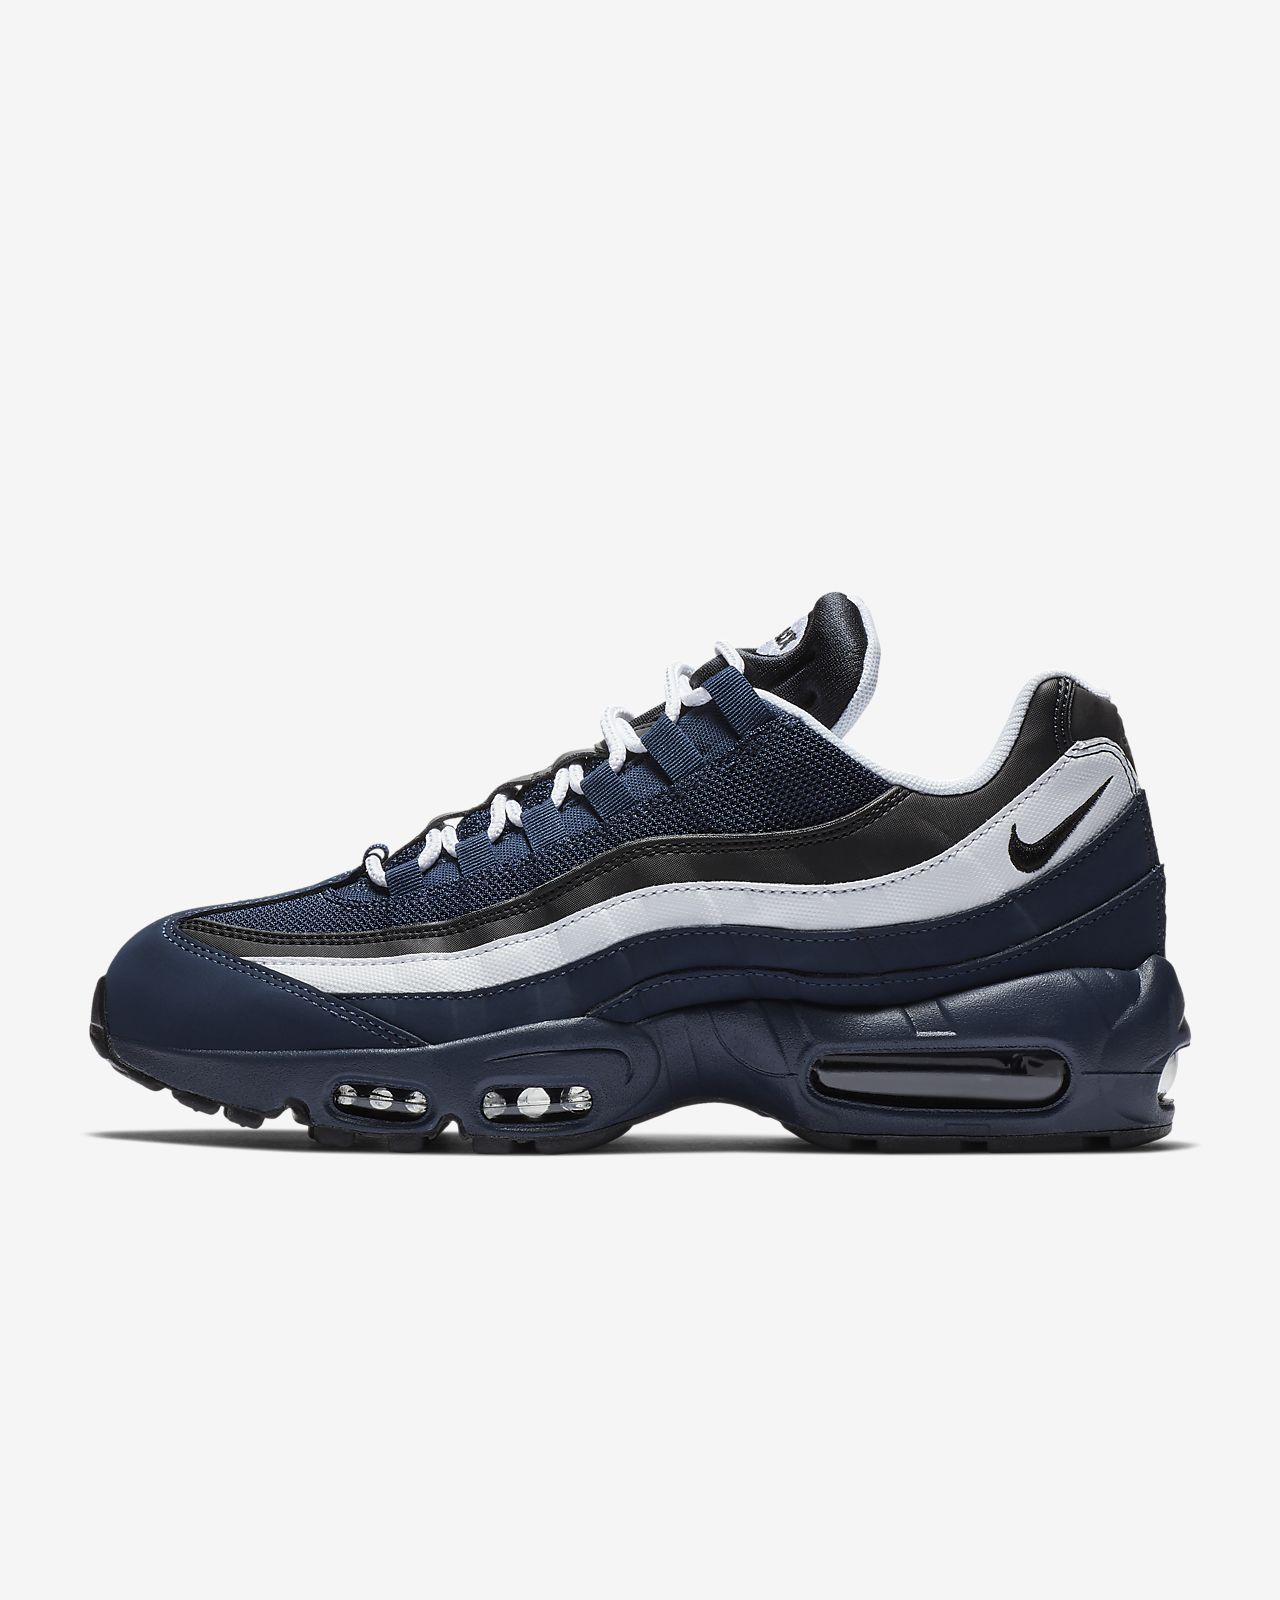 new product cf86a 3cd29 ... Calzado para hombre Nike Air Max 95 Essential